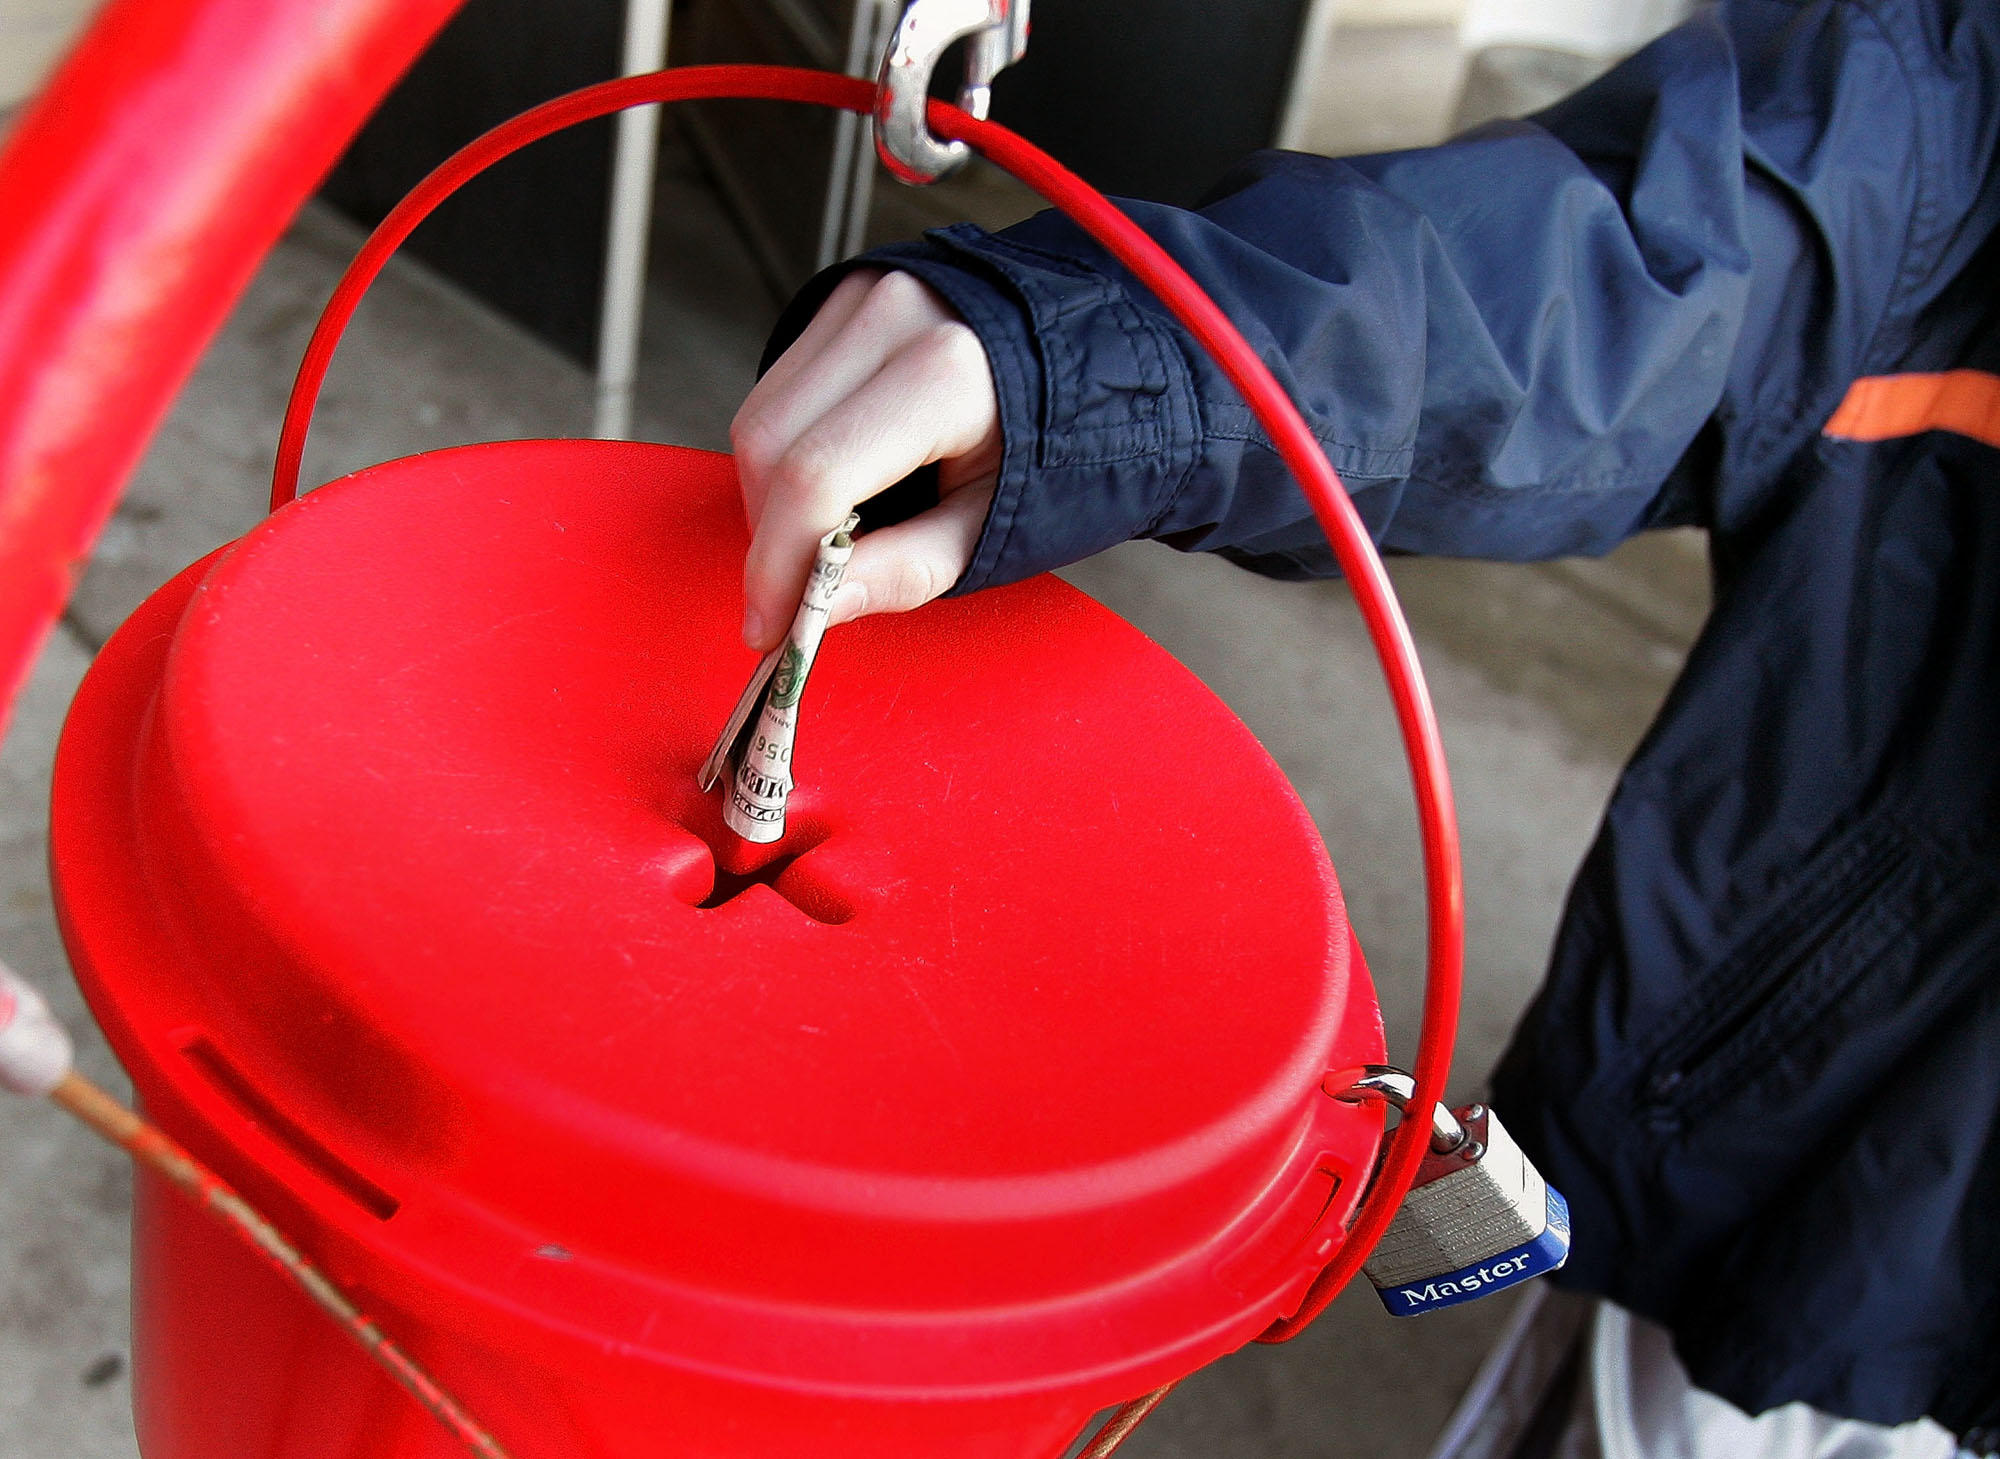 Salvation Army Red Kettle campaign is falling short